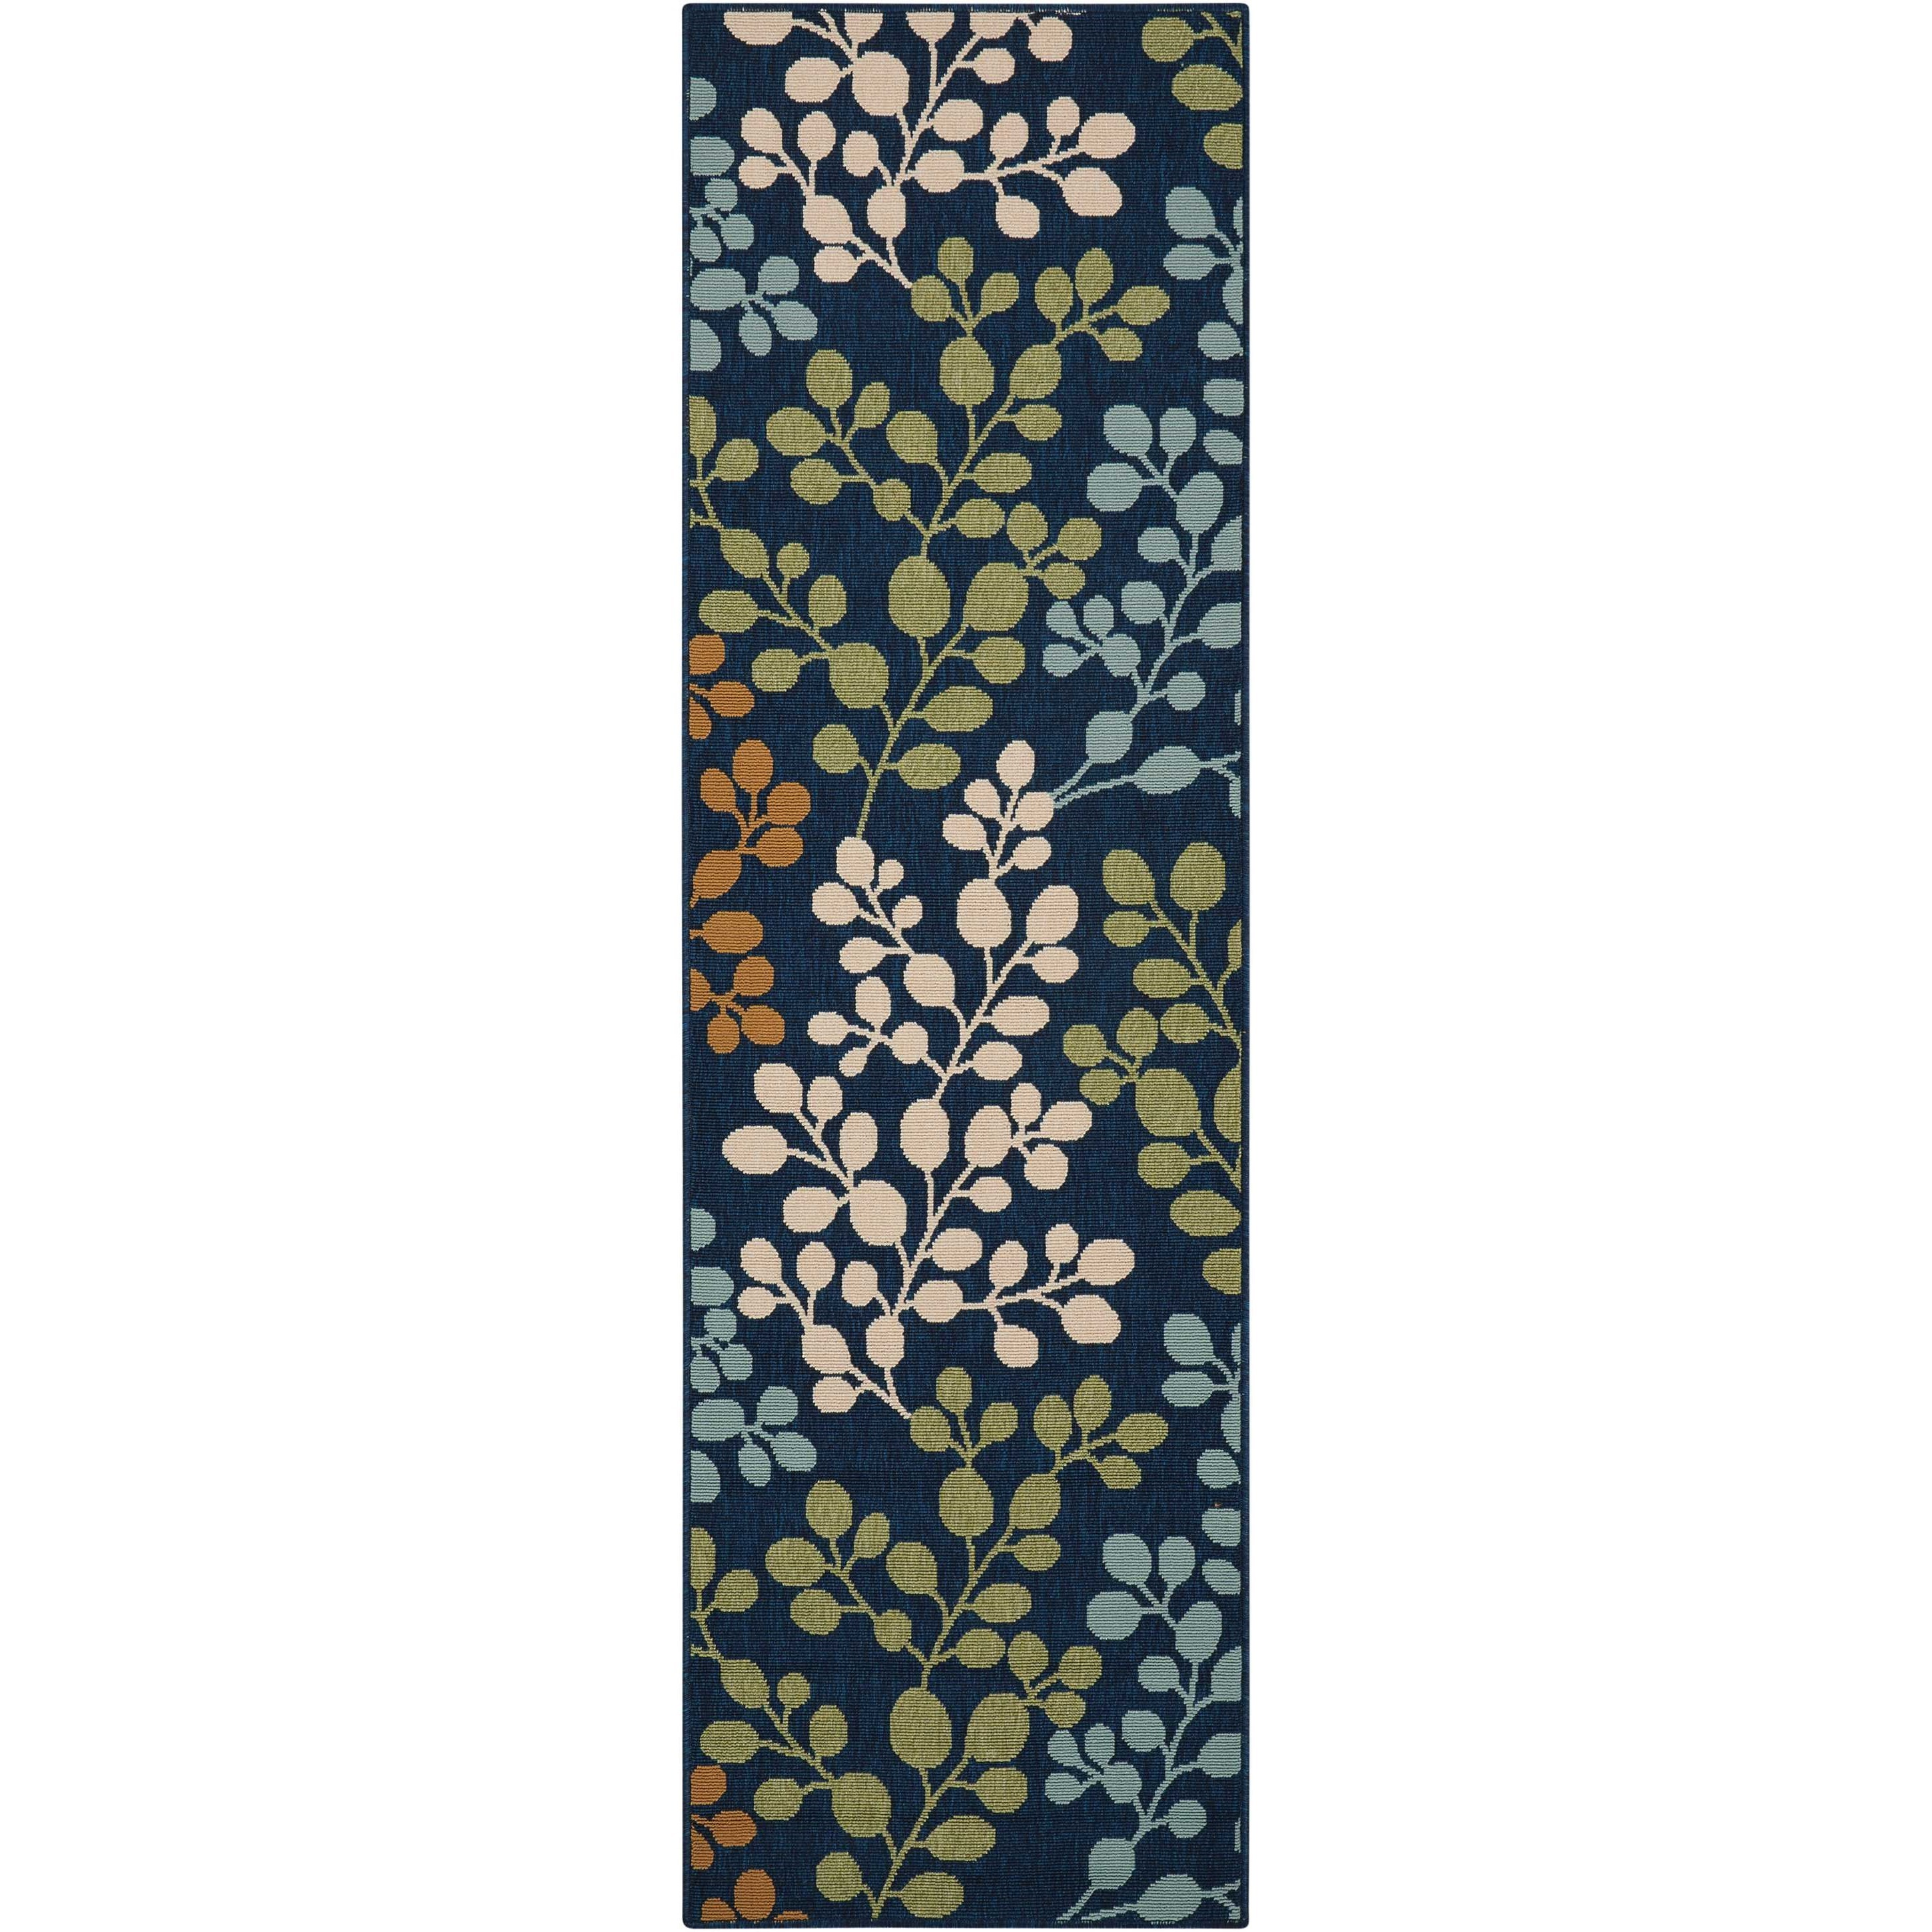 "Caribbean 2'3"" x 7'6"" Navy Runner Rug by Nourison at Home Collections Furniture"